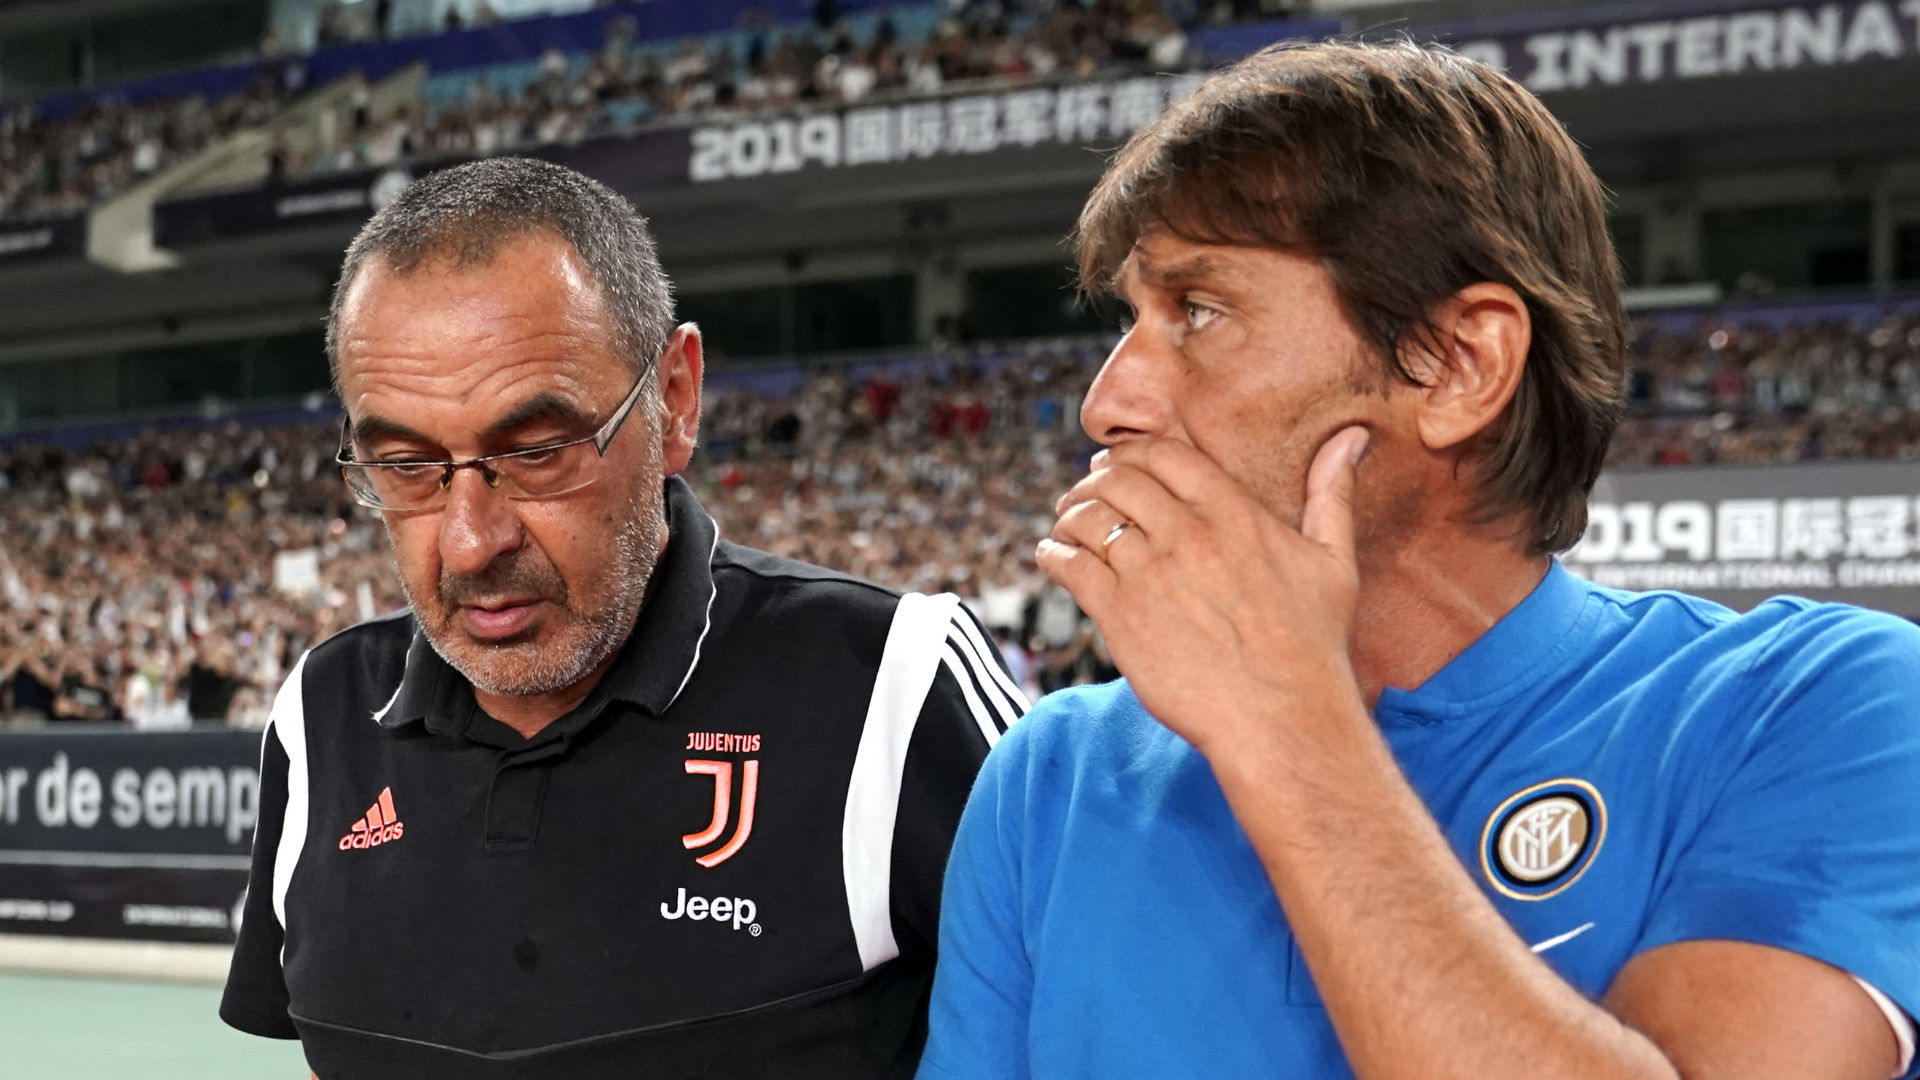 Serie A 2019-20: Why Inter and Conte can capitalise on Juve's Ronaldo problem